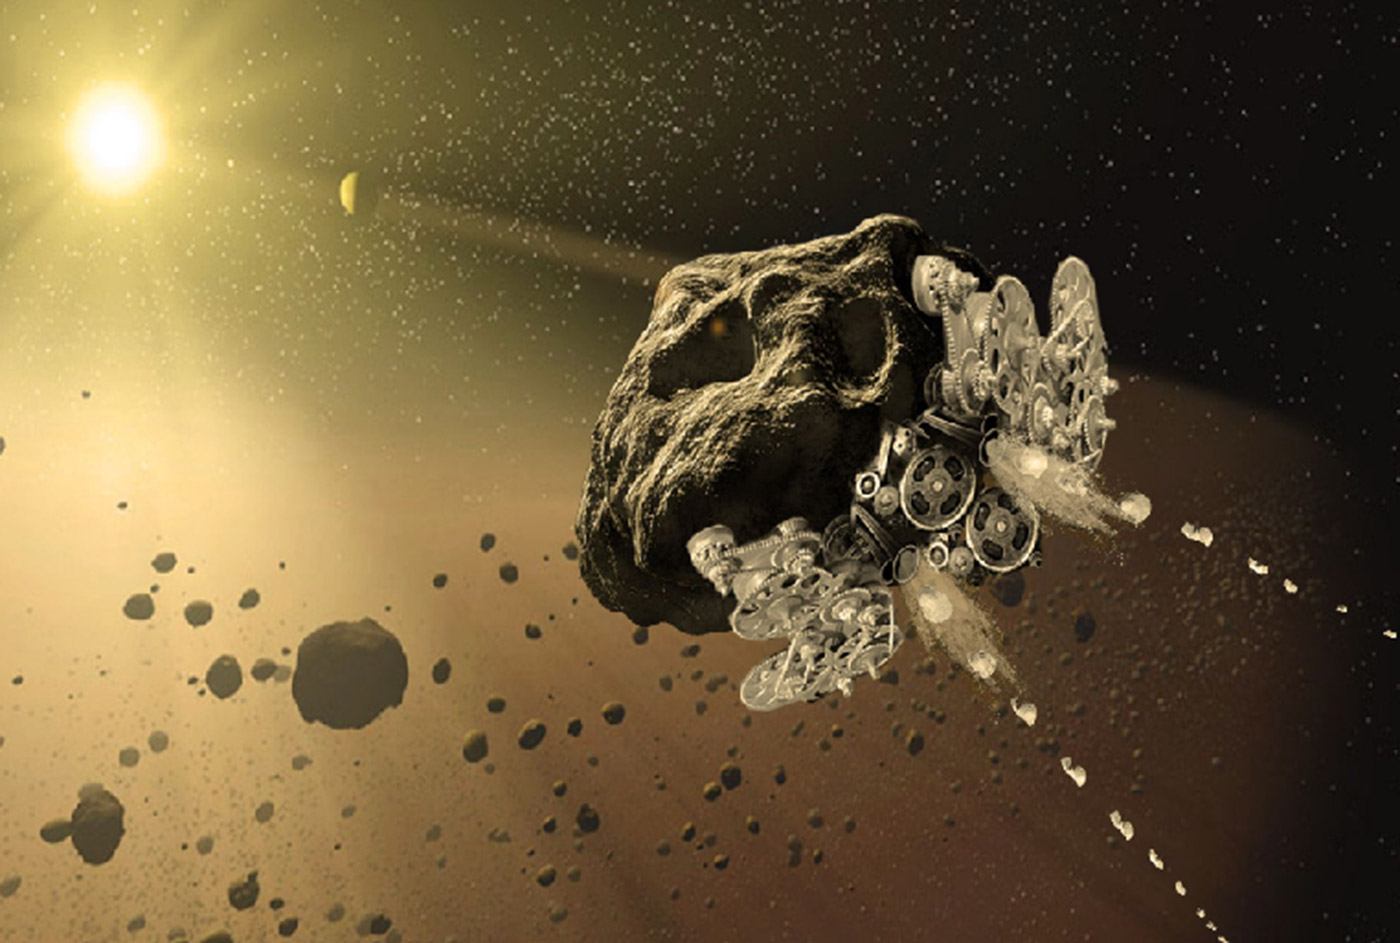 asteroid-spacecraft.jpg